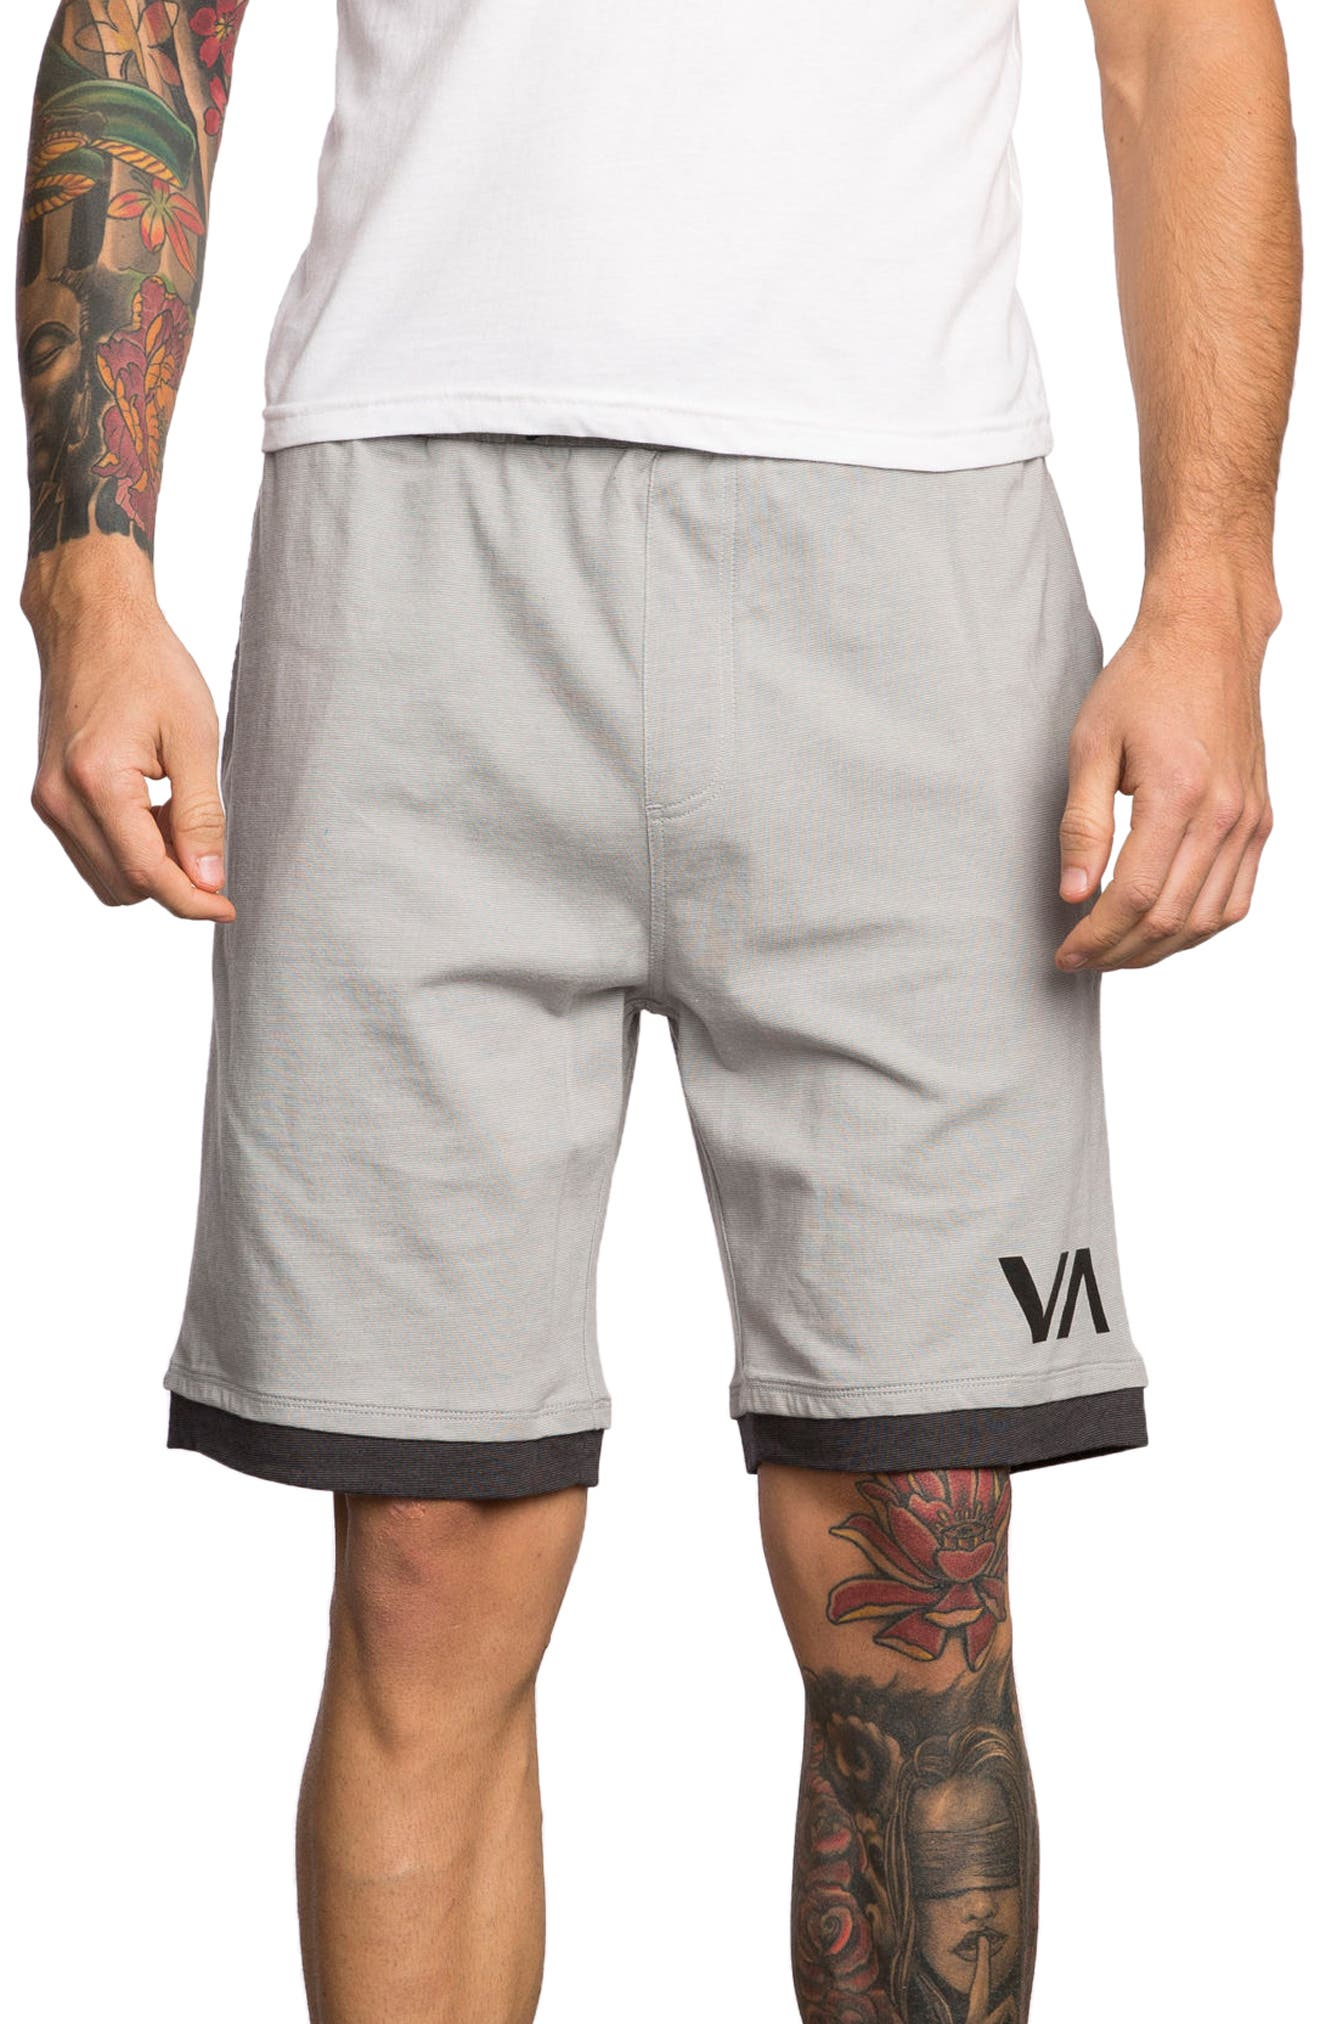 Layers Sport Shorts,                         Main,                         color, Athletic Heather